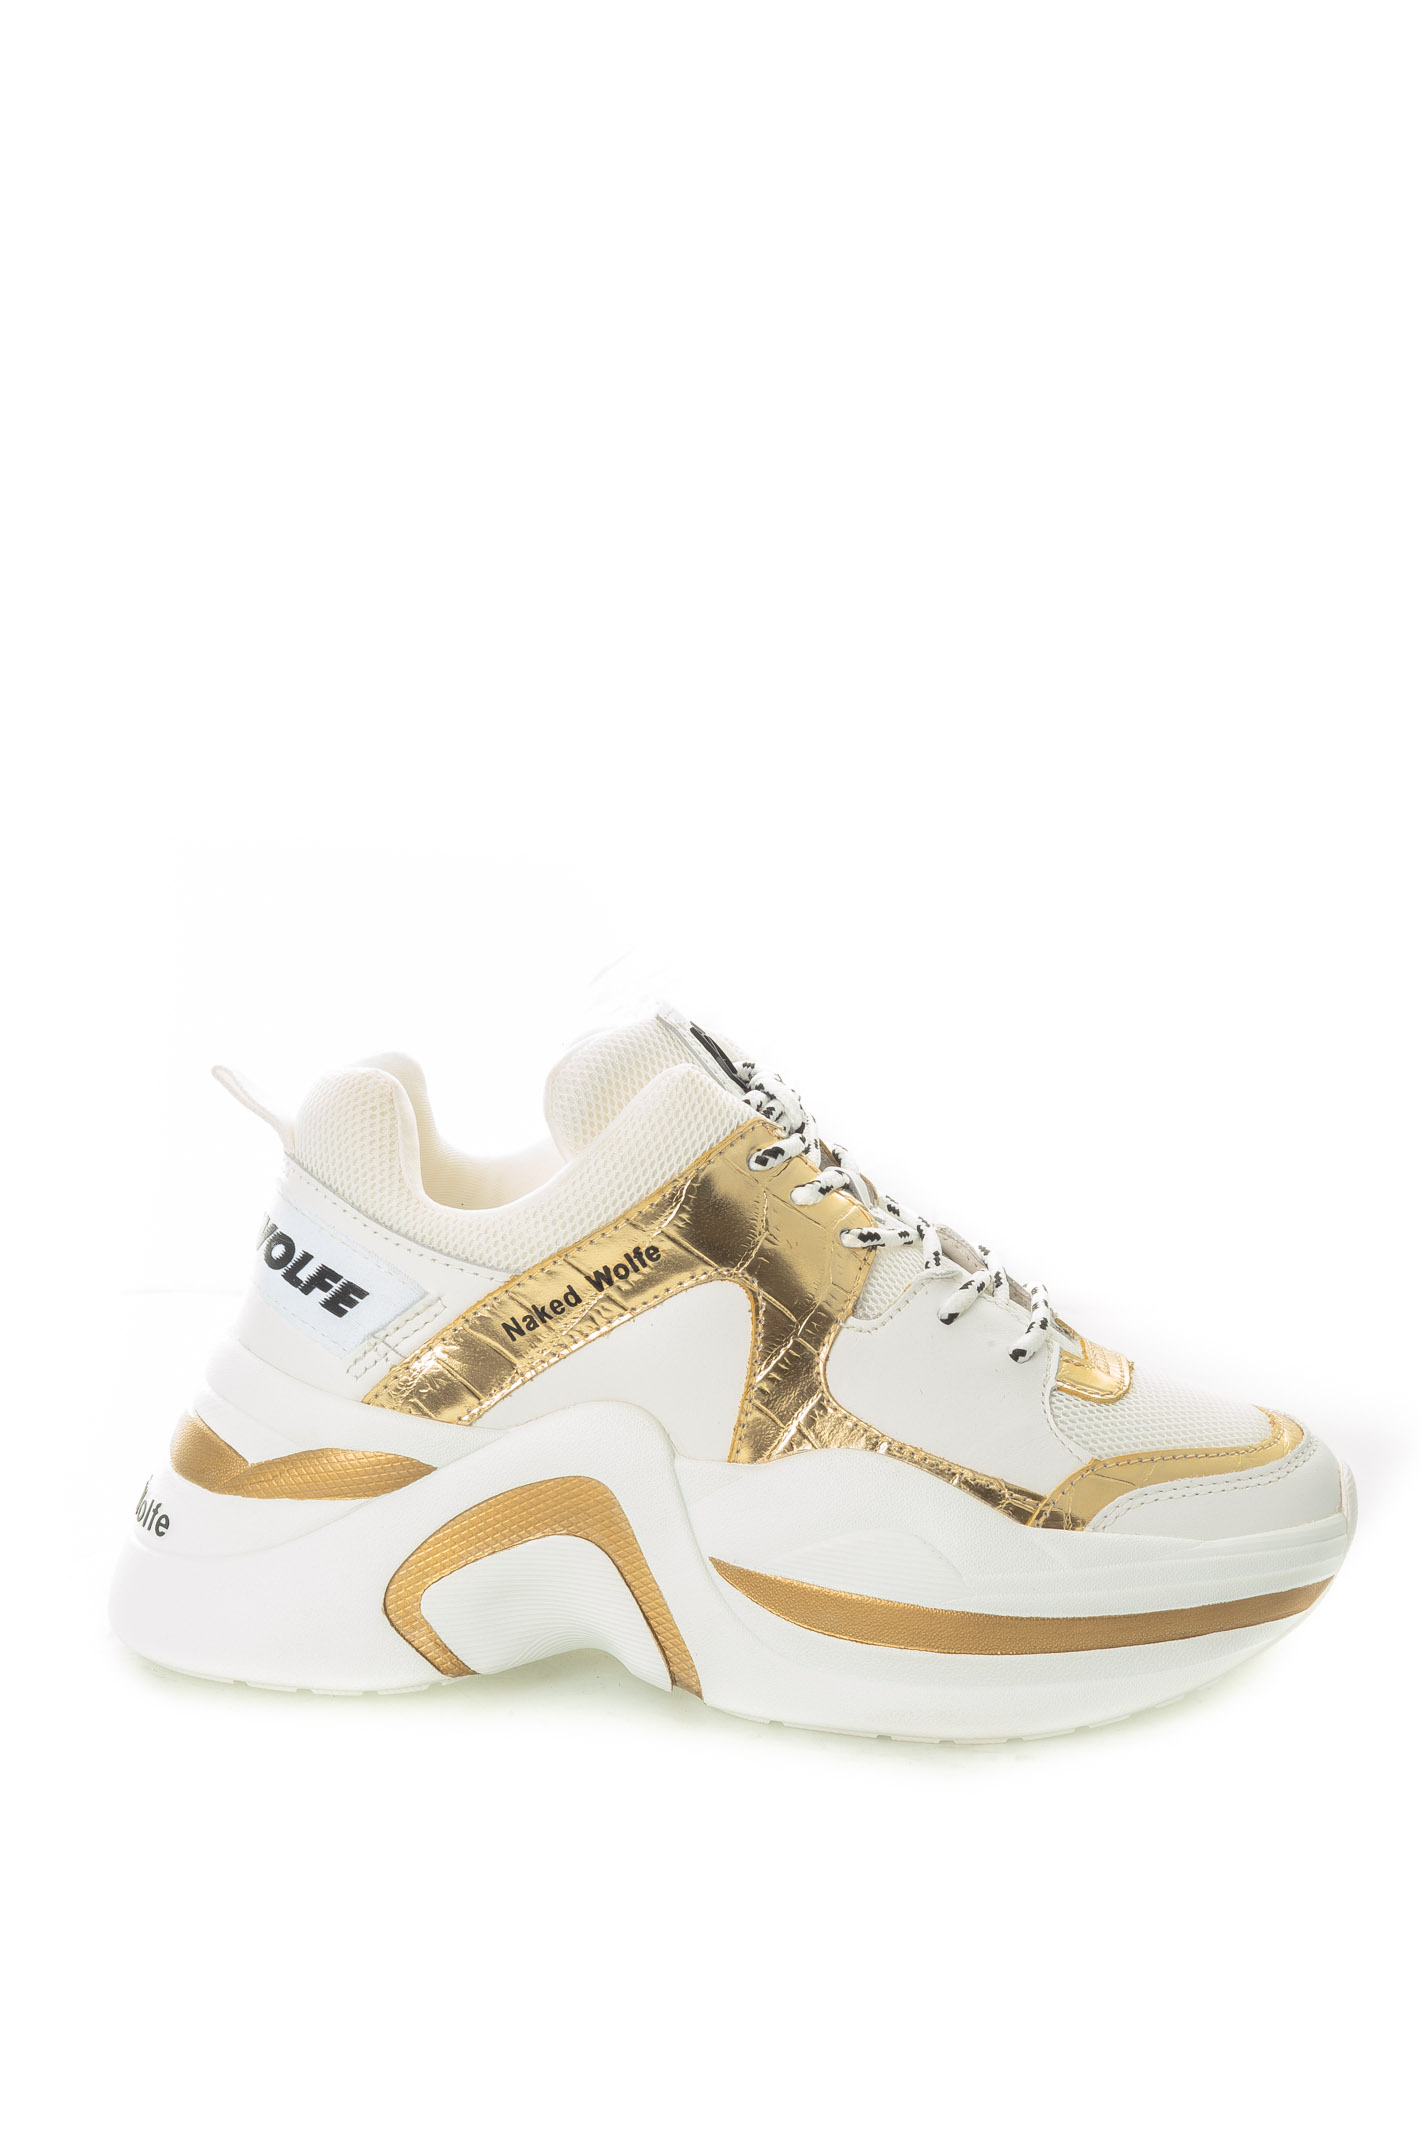 TRACKPELLE/LAM-WHT/GOLD